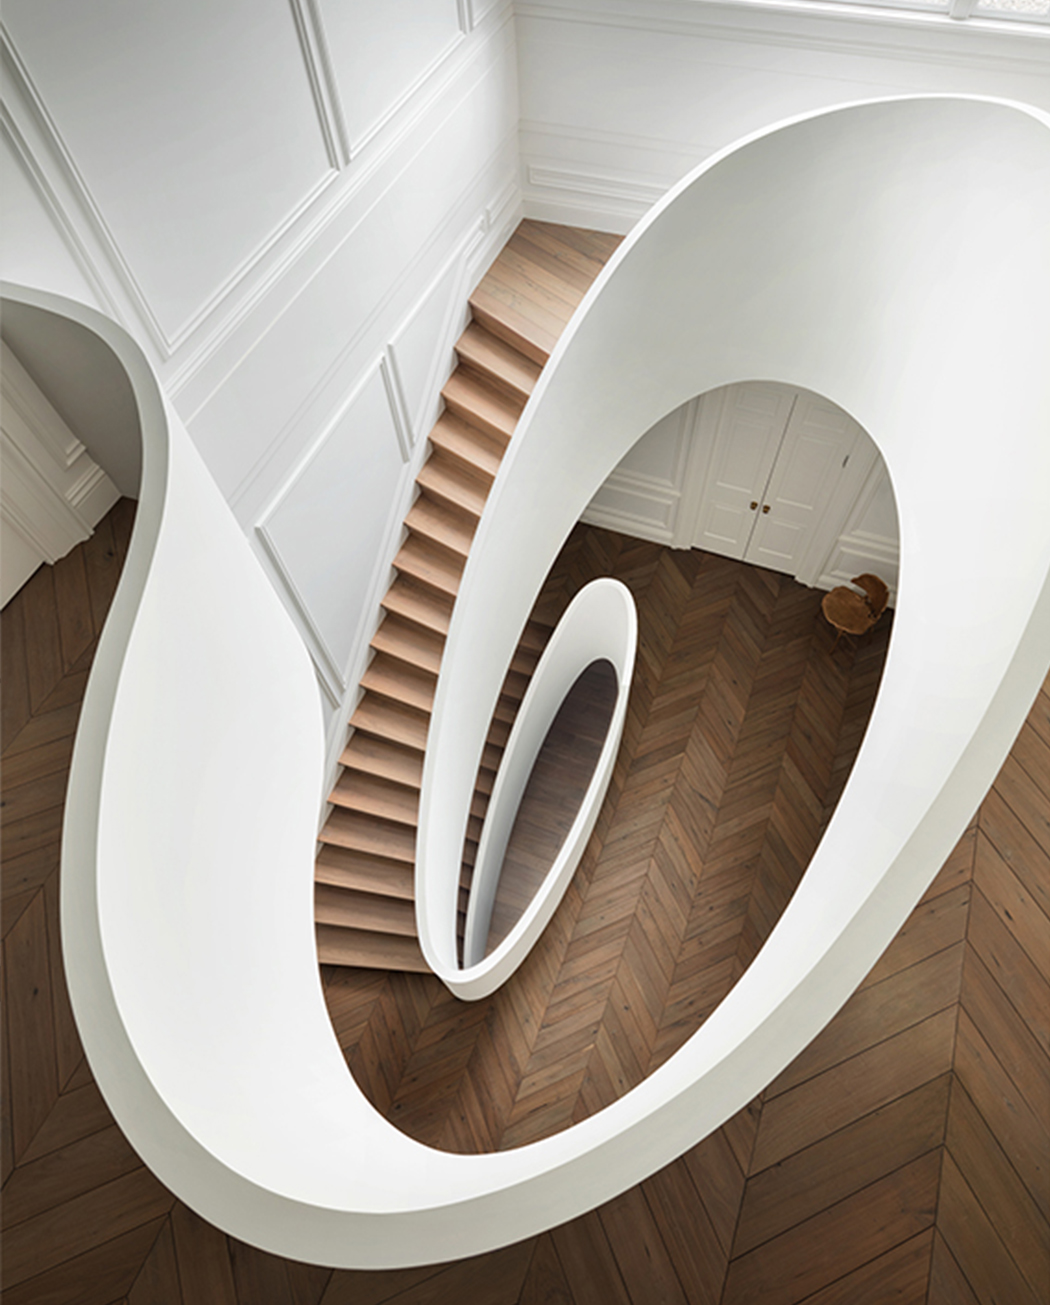 Ideas 19 Modern And Elegant Stair Design Ideas To: Staircase Designs That Will Uplift Any Space